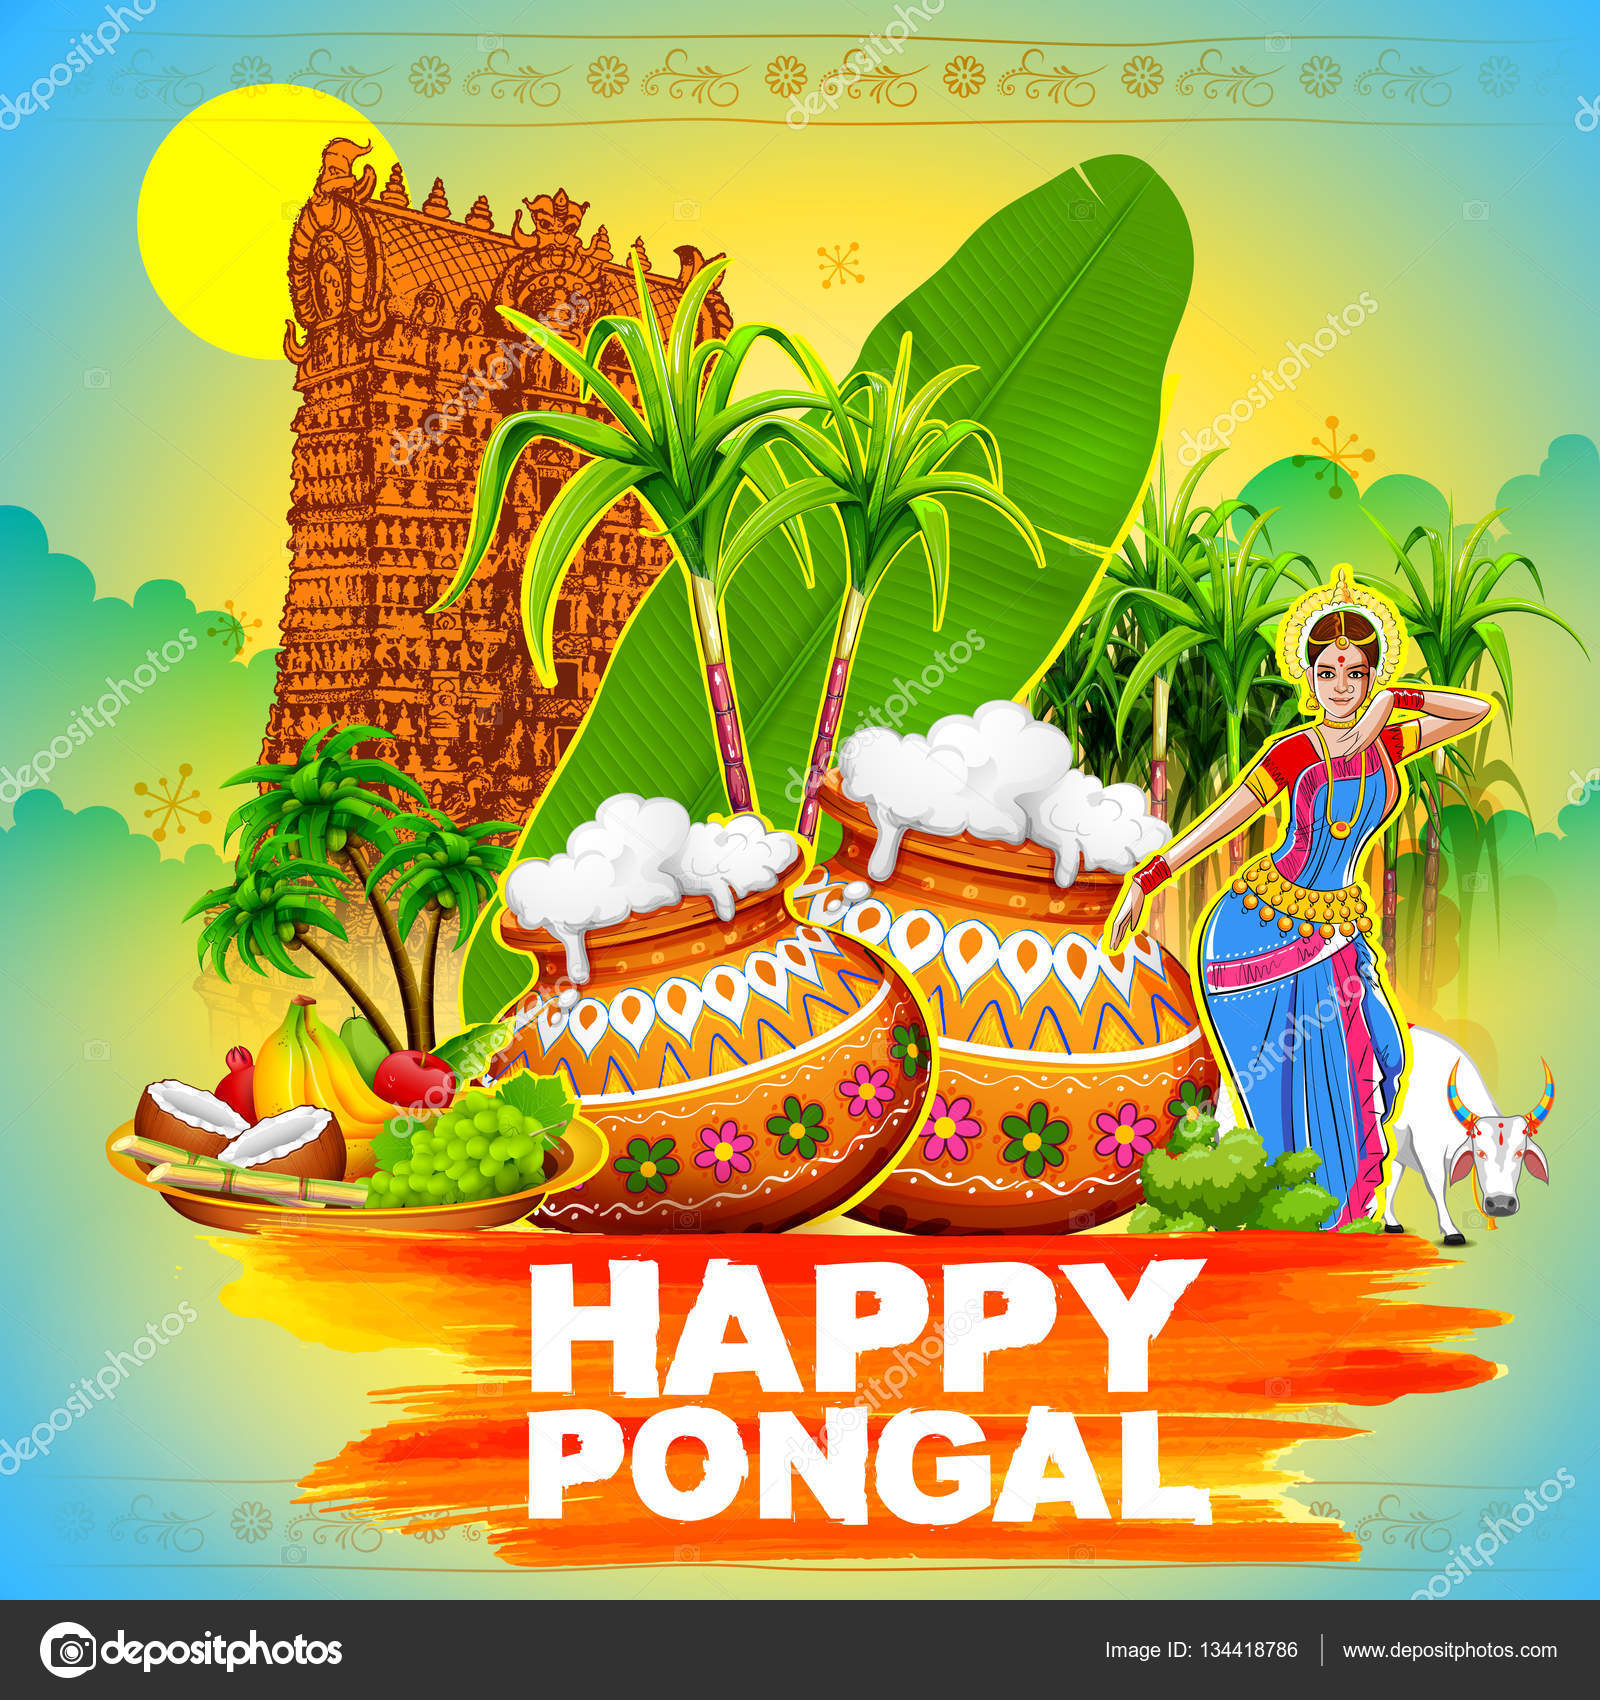 Happy pongal greeting background stock vector vectomart 134418786 happy pongal greeting background stock vector m4hsunfo